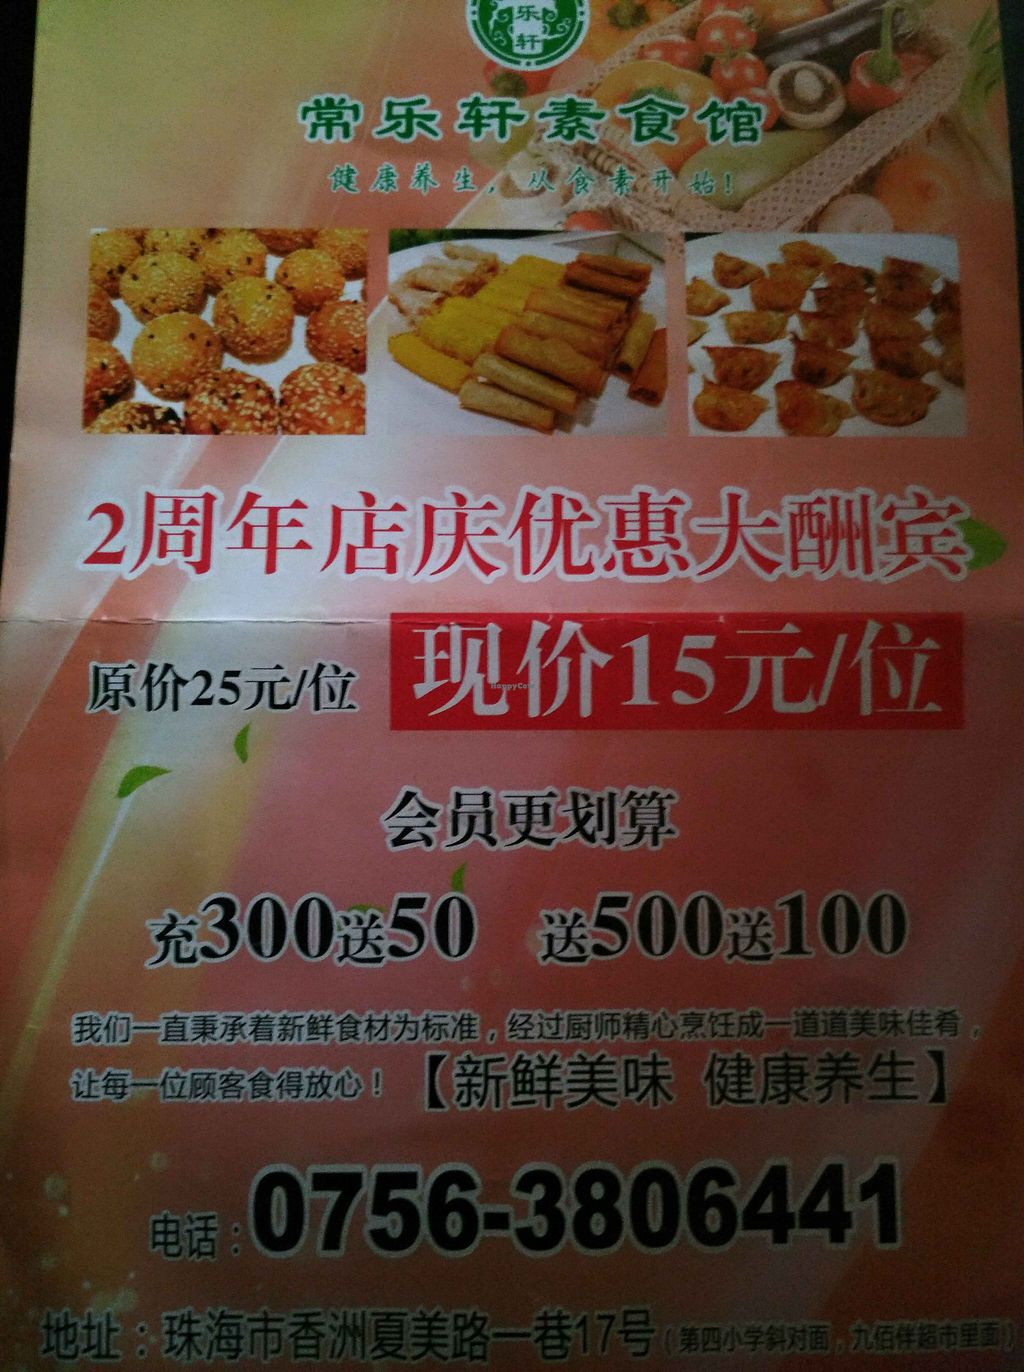 """Photo of ChangLe Xuan Vegetarian Buffet  by <a href=""""/members/profile/mcquinten2"""">mcquinten2</a> <br/>leaflet <br/> November 21, 2017  - <a href='/contact/abuse/image/105124/327775'>Report</a>"""